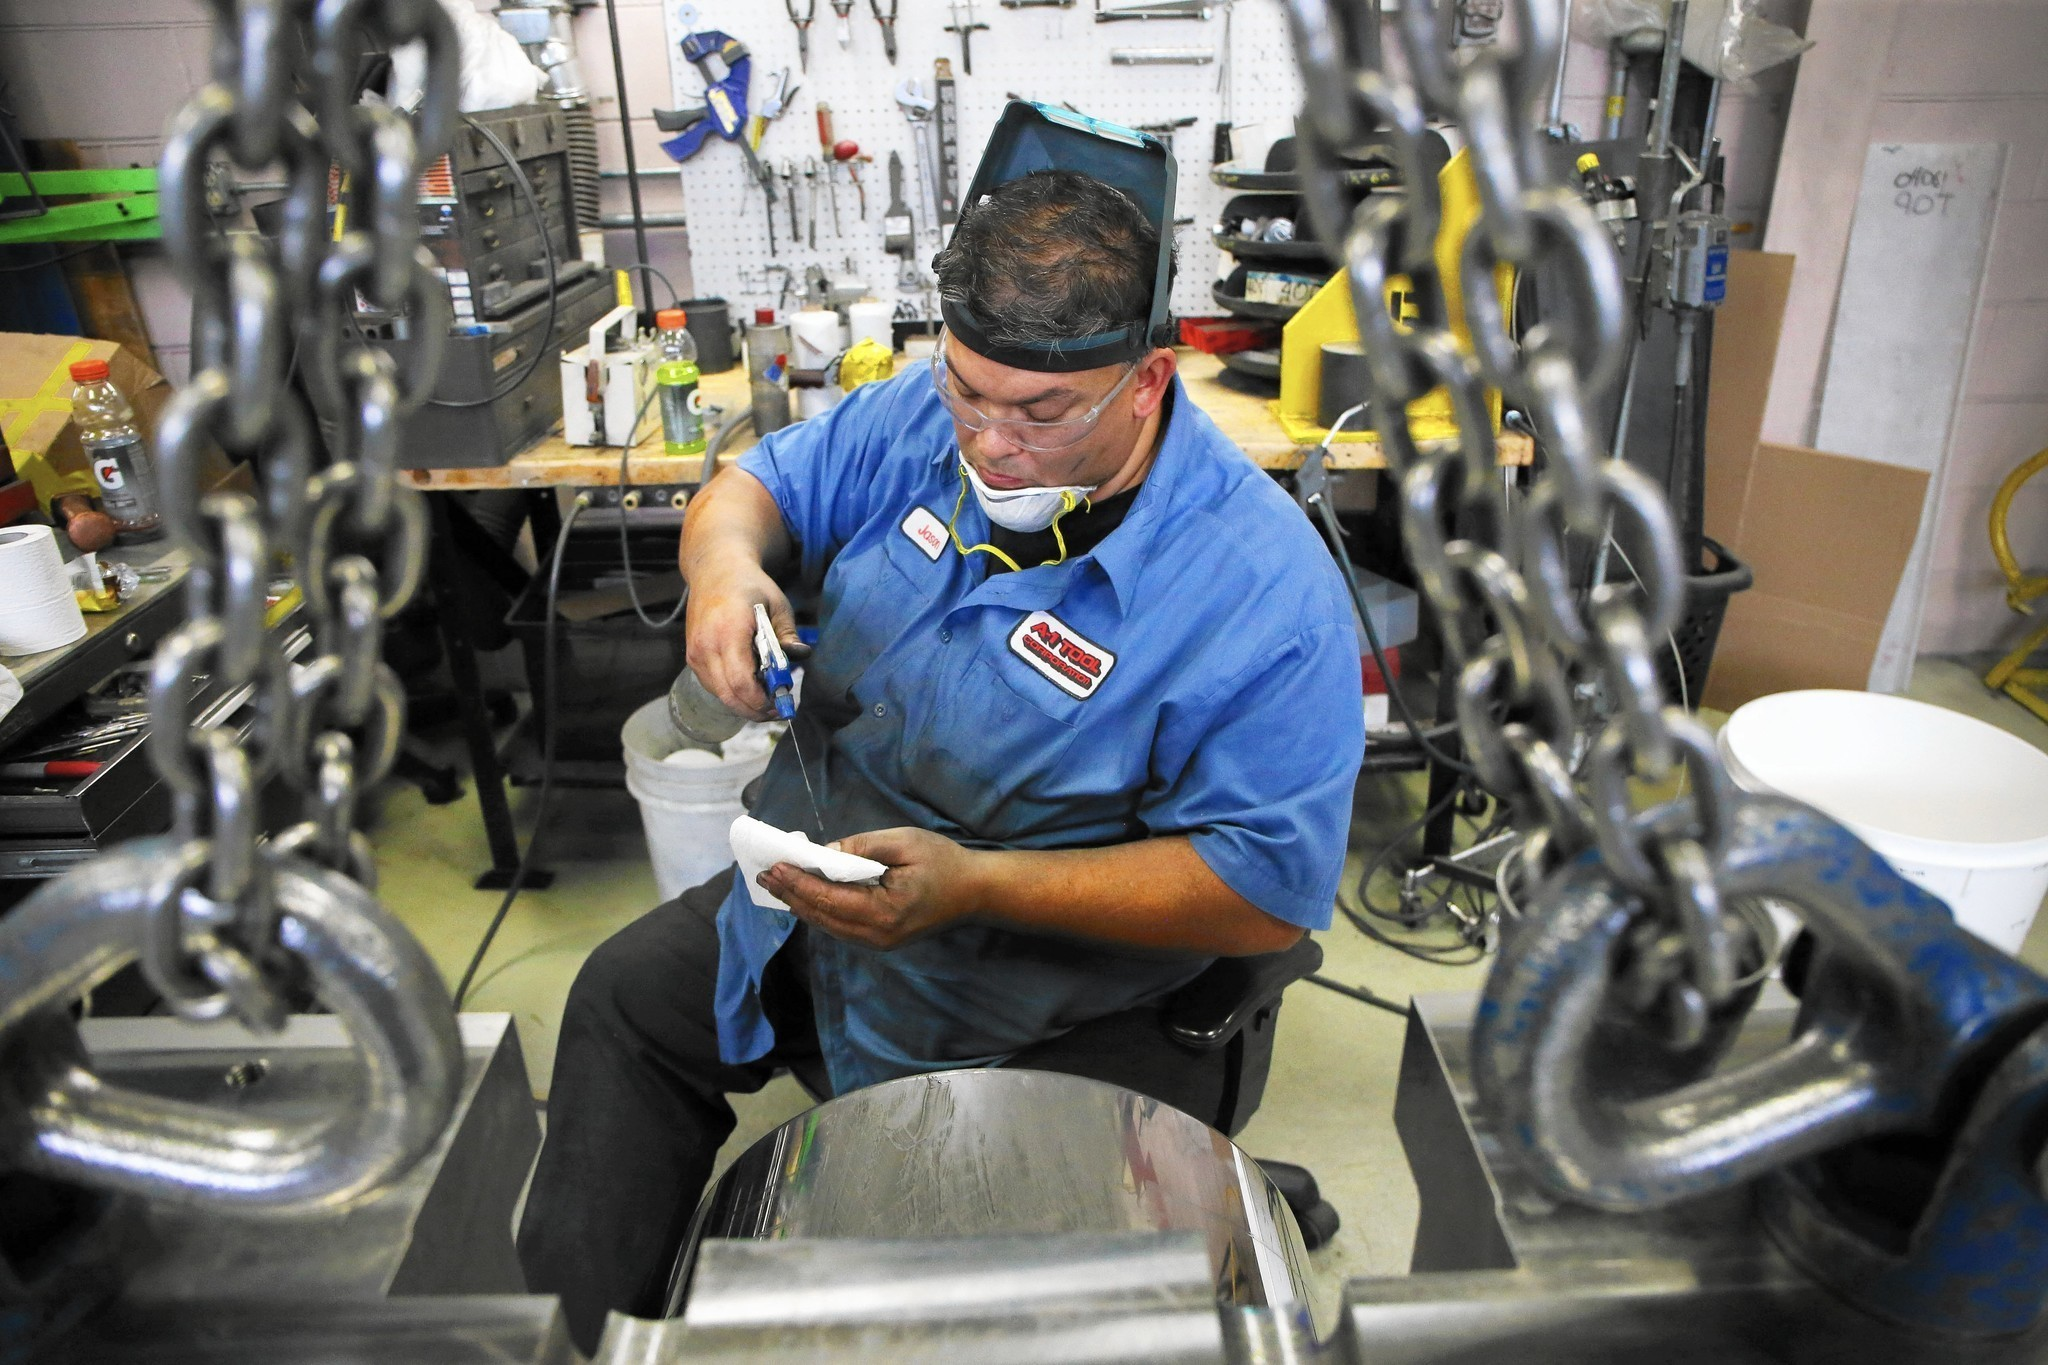 manufacturings big challenge finding skilled and